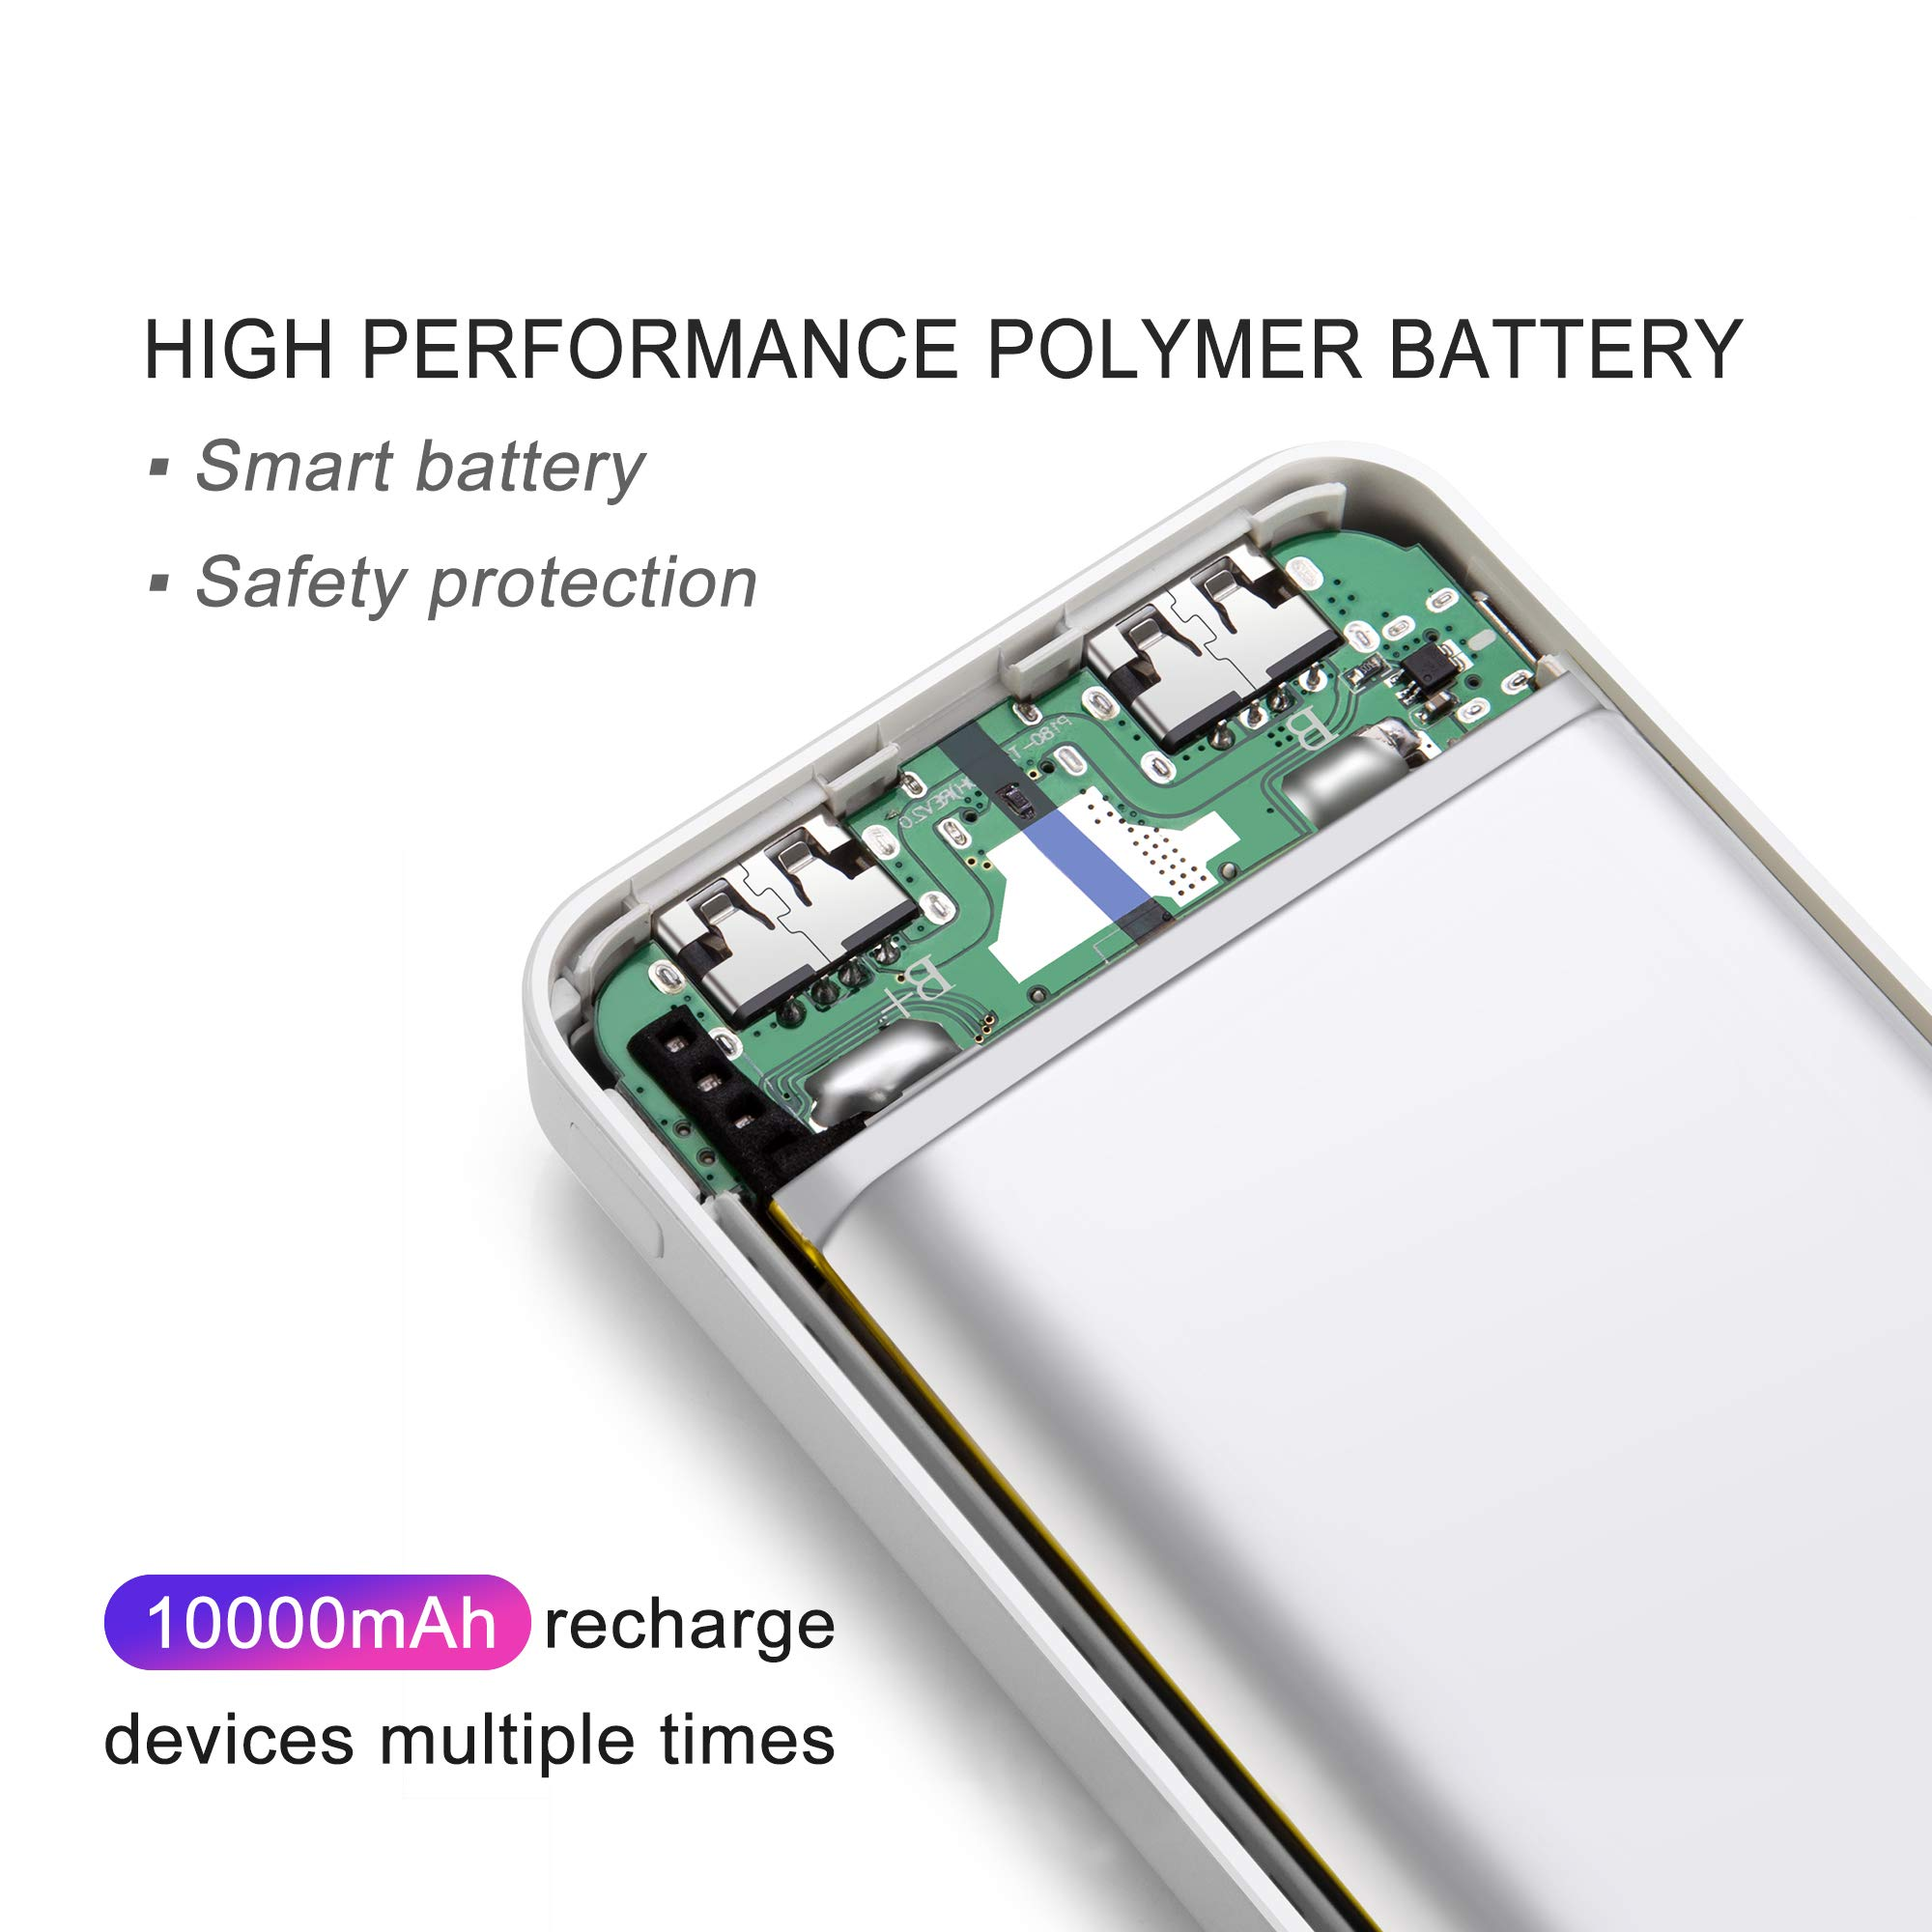 Topmate Power Bank Portable Charger 10000mAh External Battery Pack with Type-C Input & Output | Ultra Thin Design for Cellphone and Pad etc 丨White